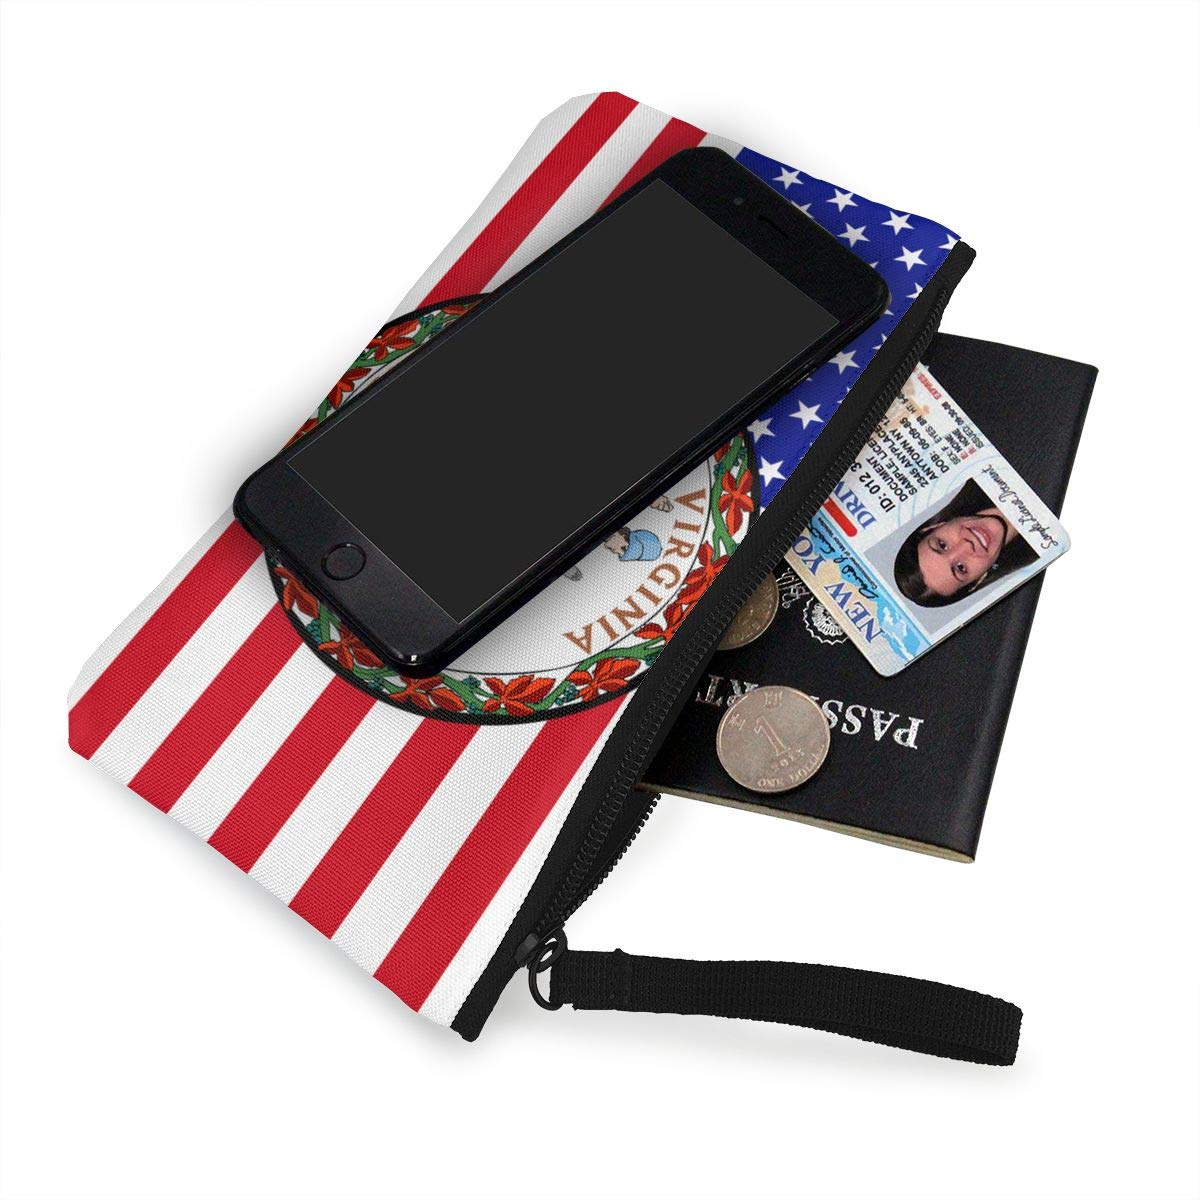 Maple Memories Virginia Flag Portable Canvas Coin Purse Change Purse Pouch Mini Wallet Gifts For Women Girls